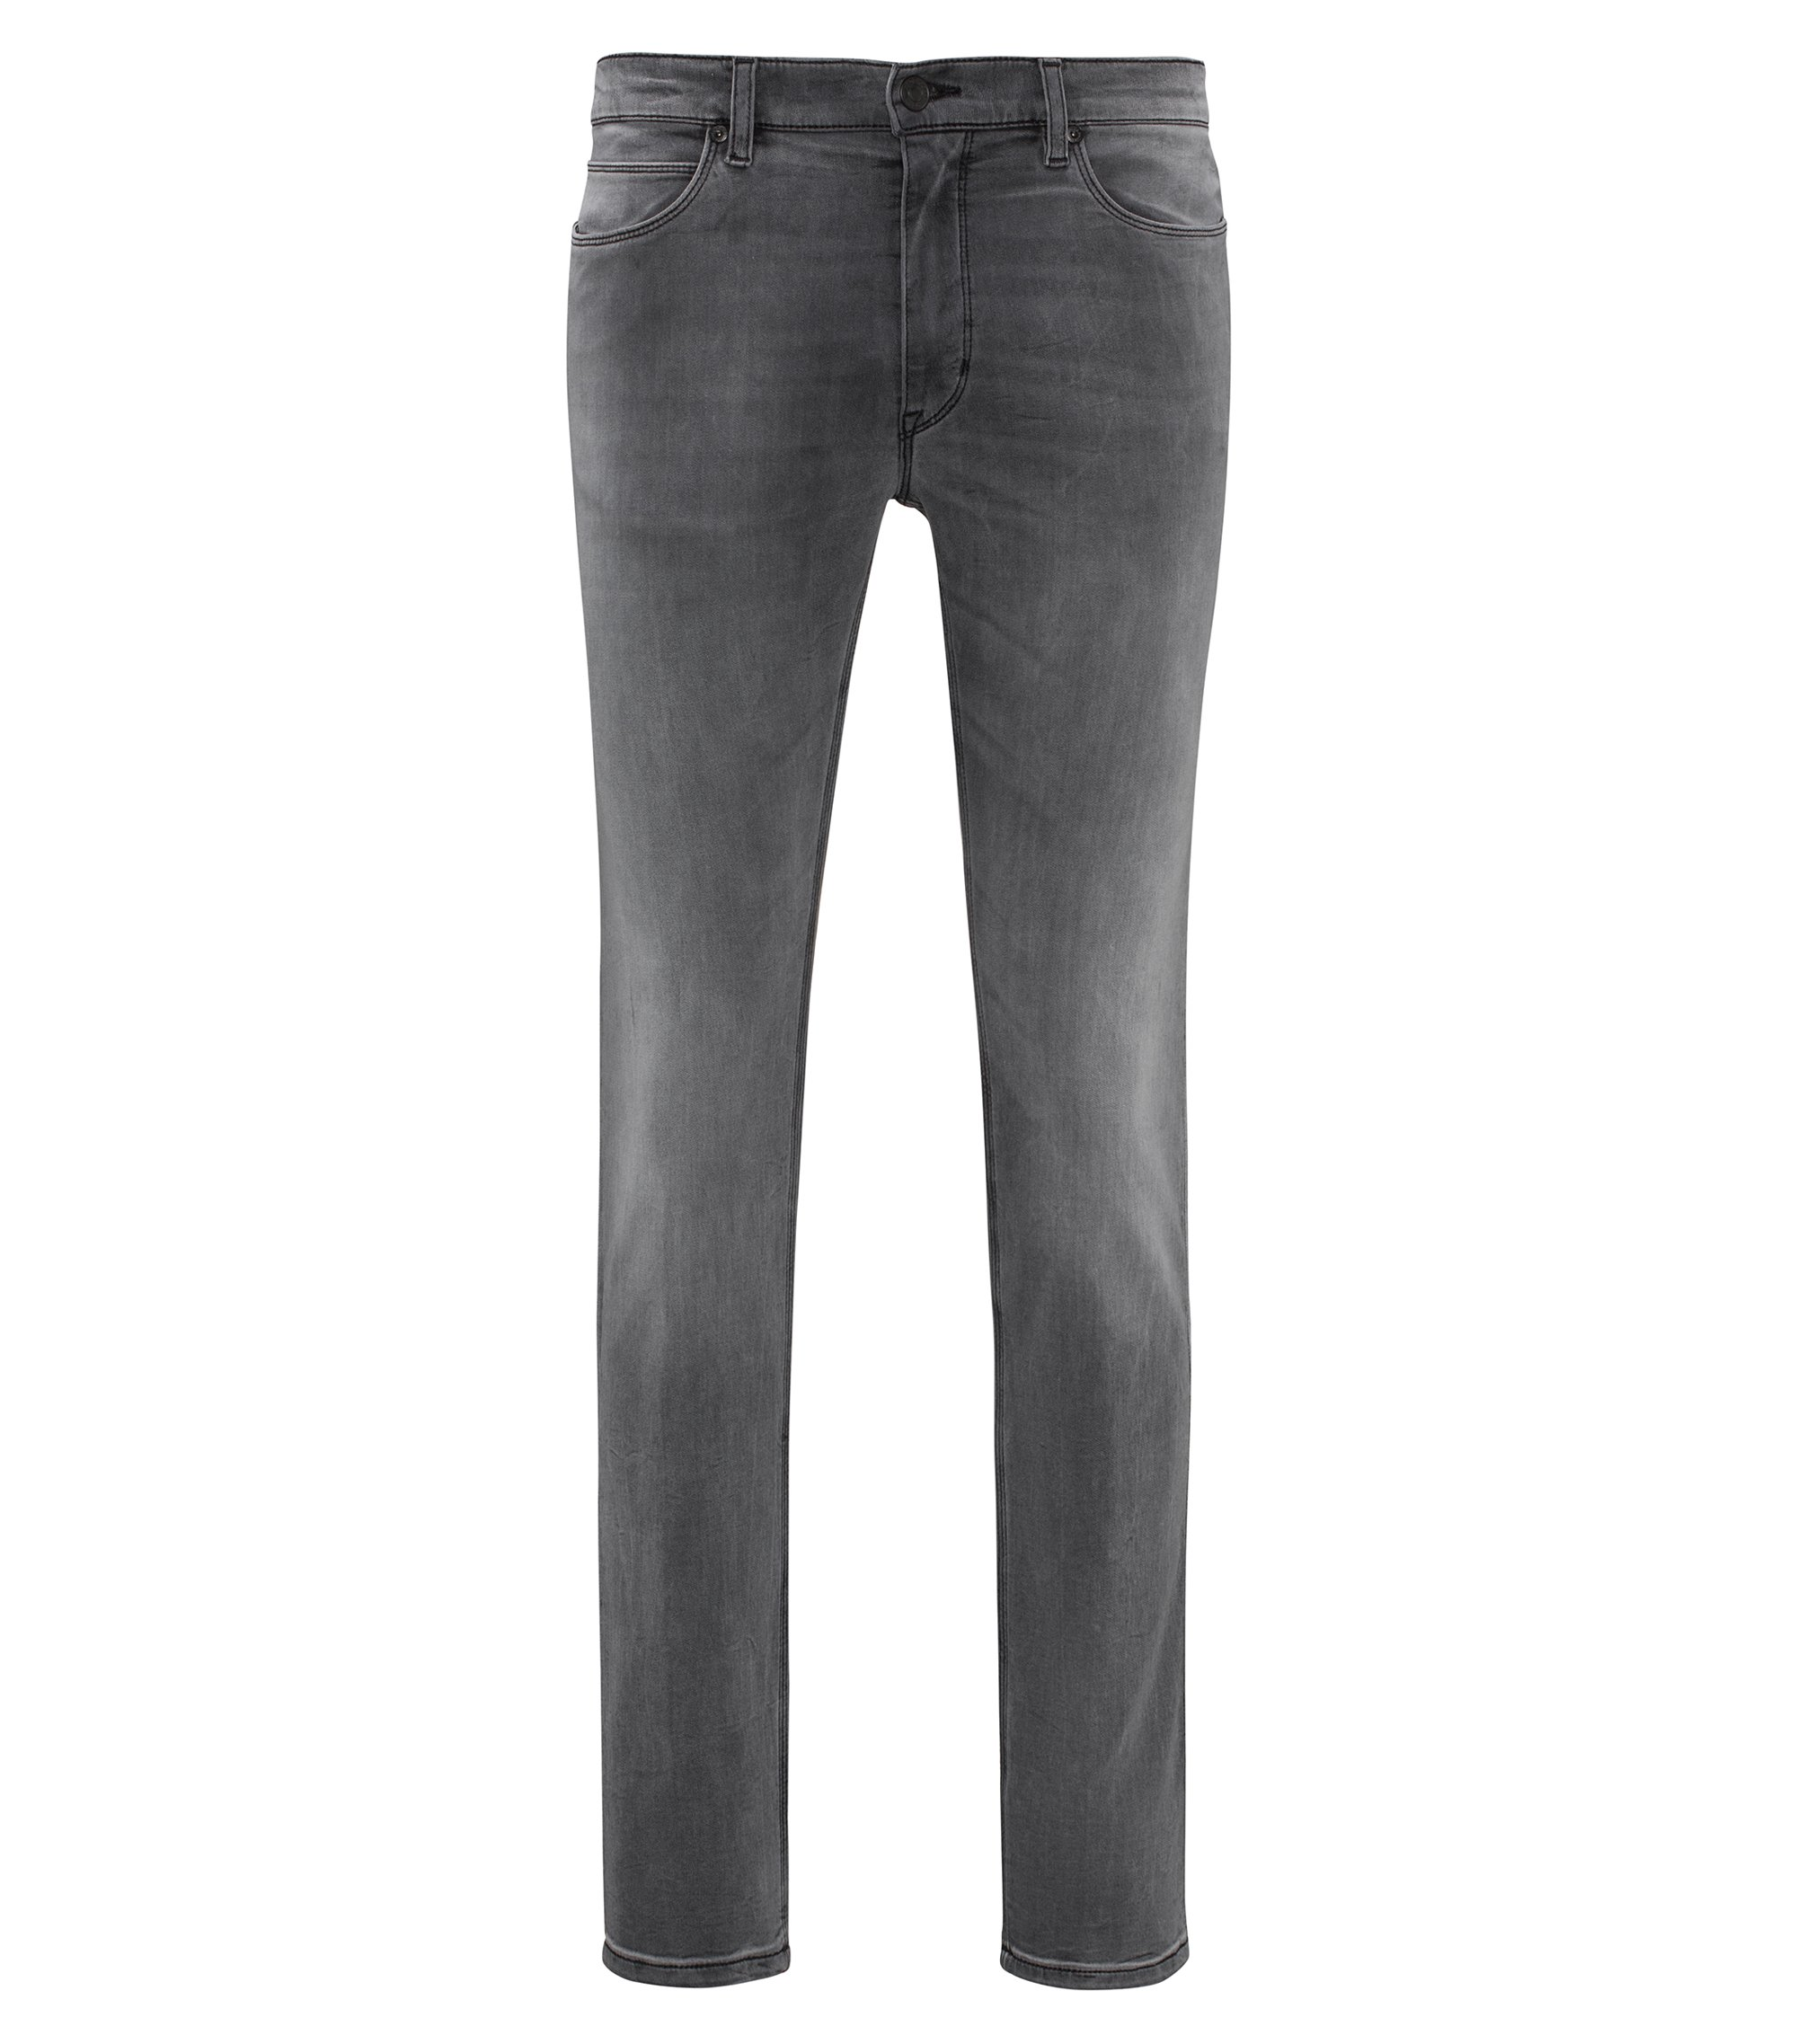 Stretch Cotton Jeans, Skinny Fit | Hugo 734, Grey